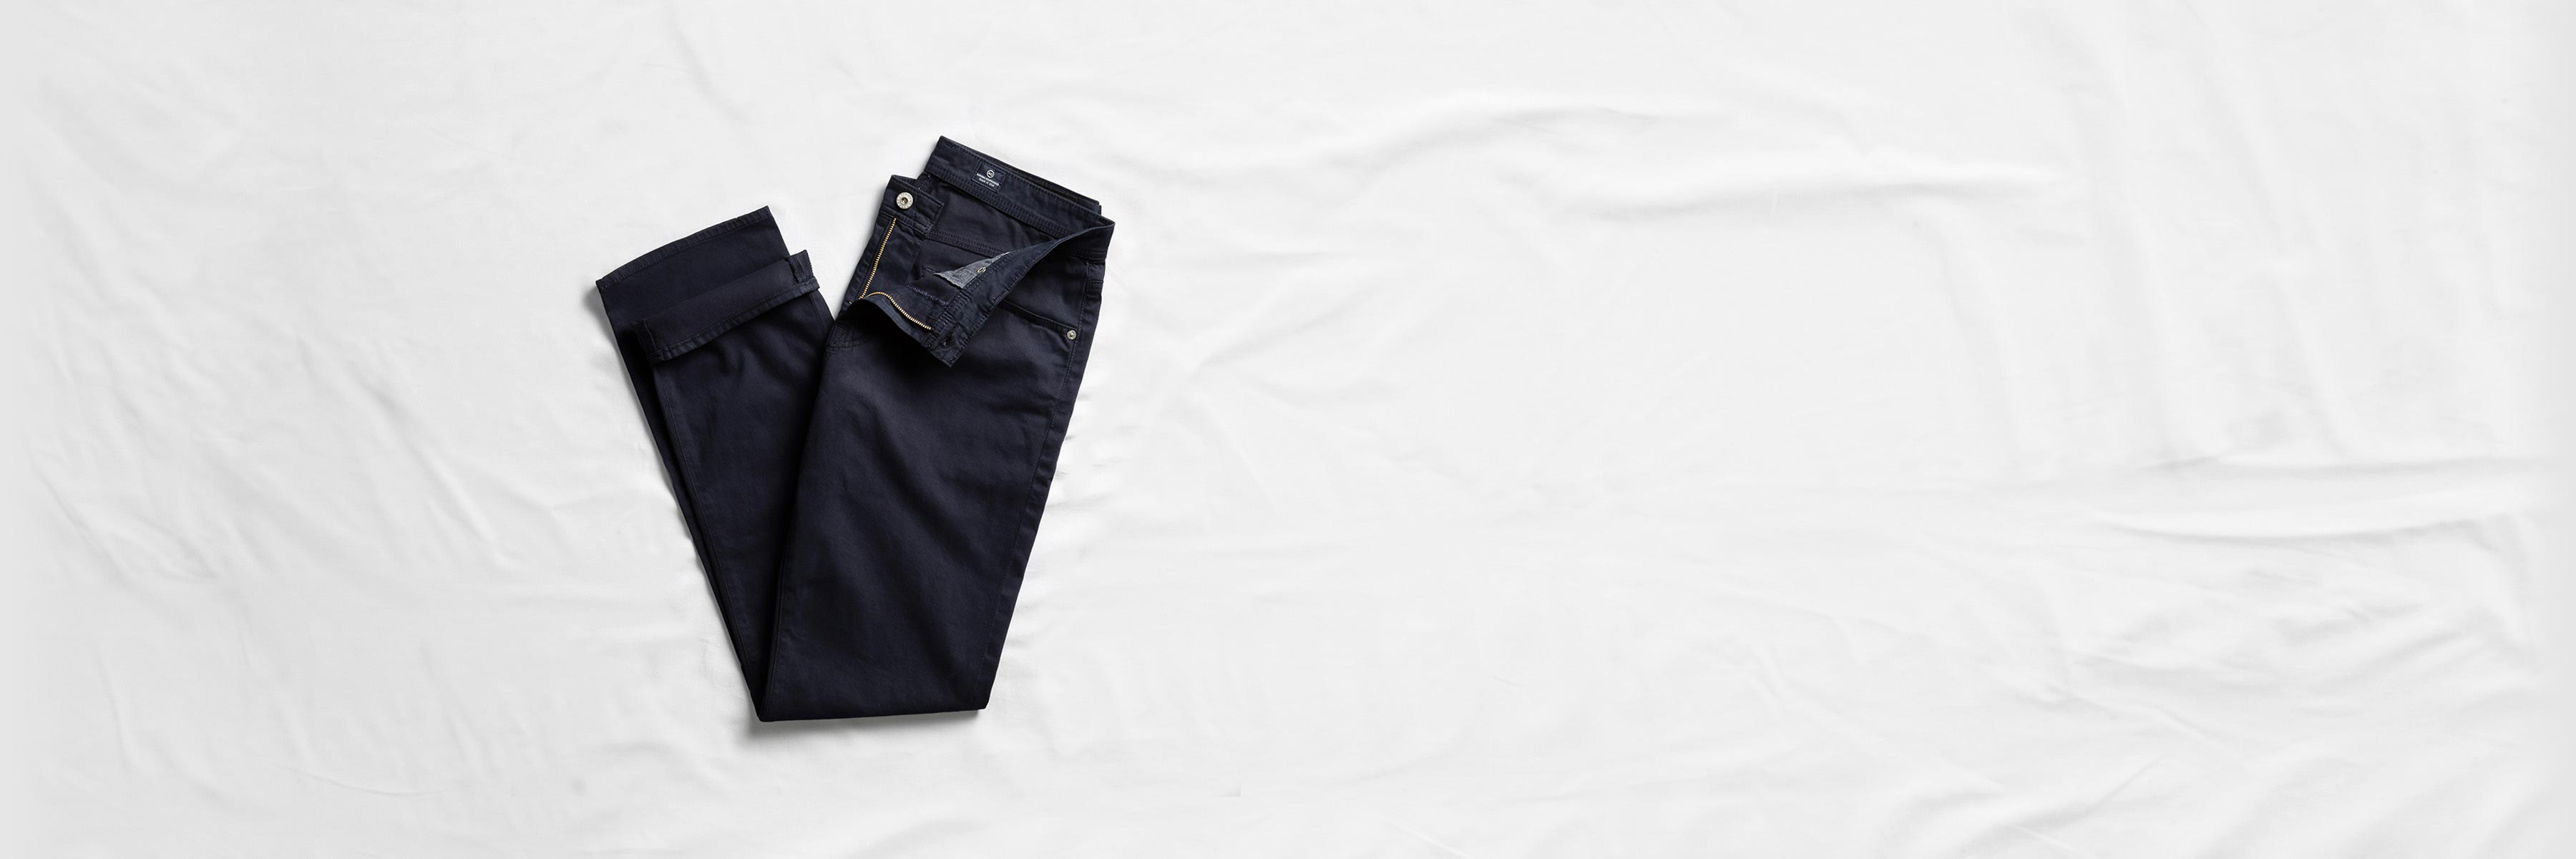 ag-chinos-large